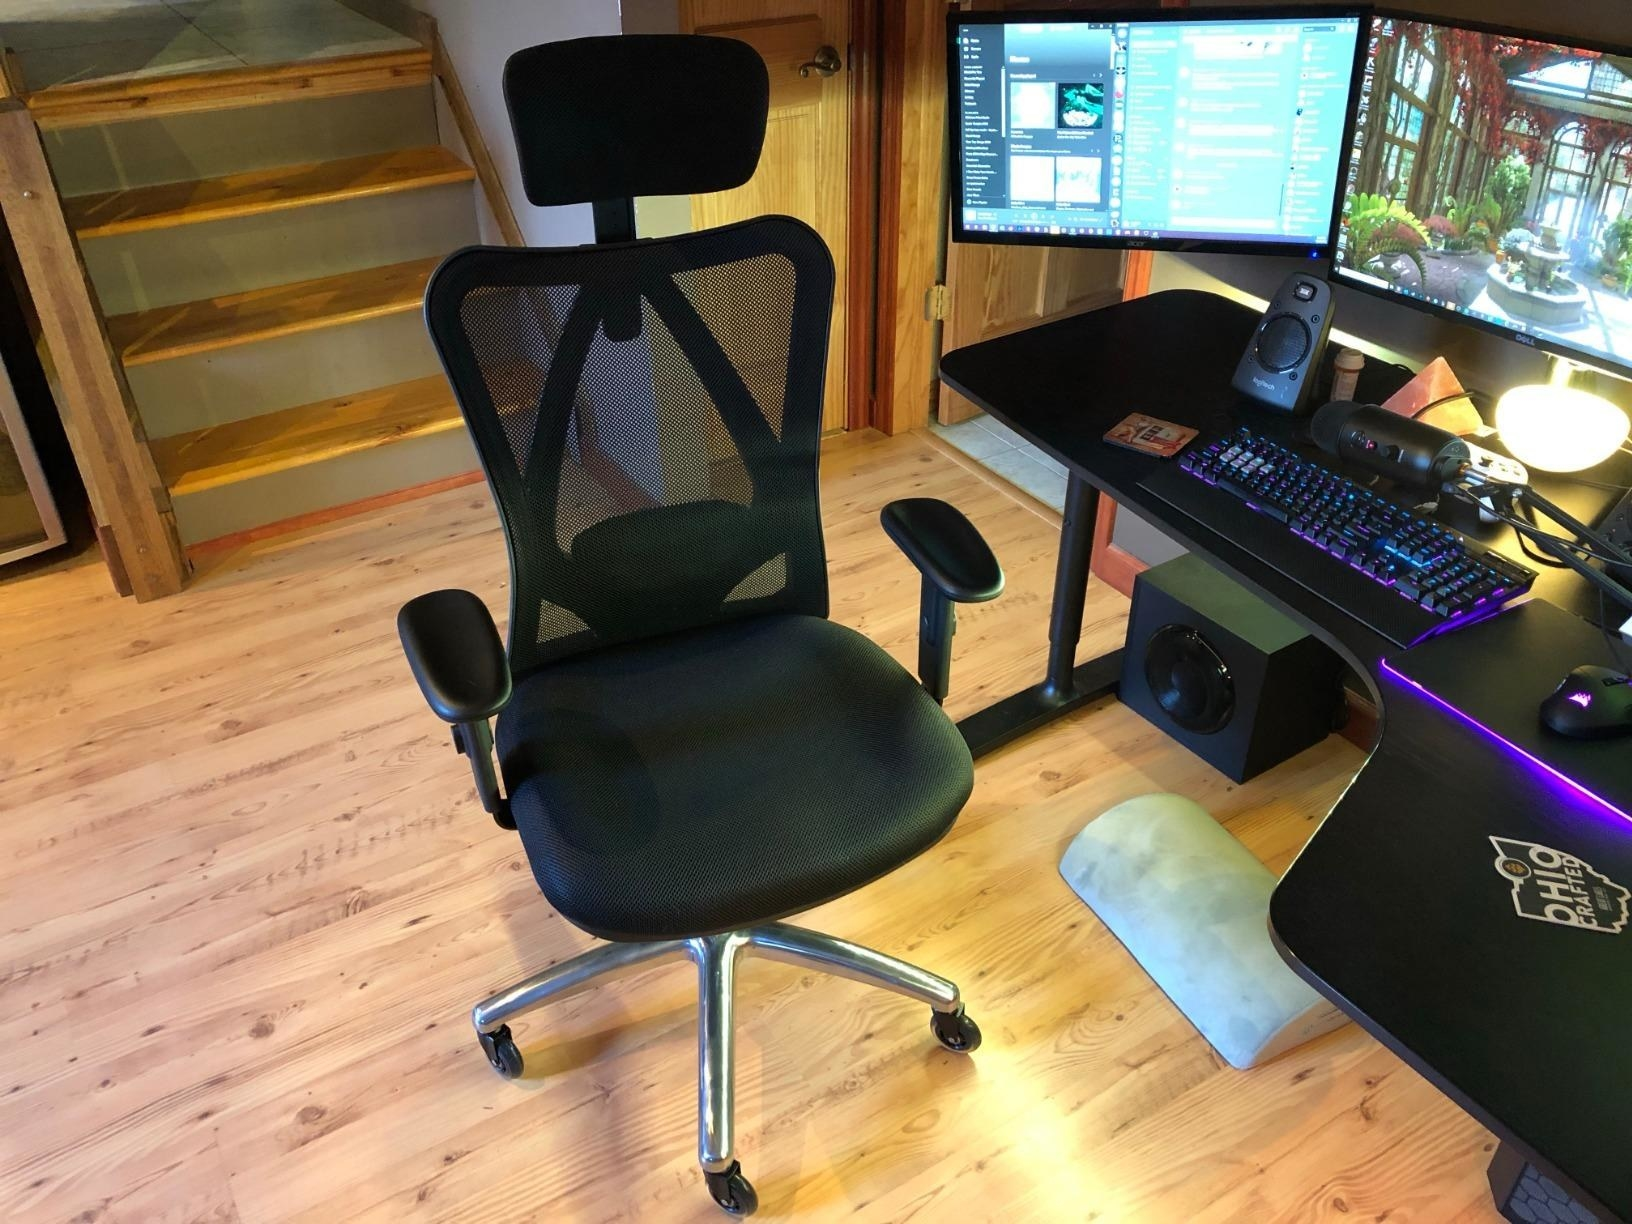 Reviewer image of the chair at a desk